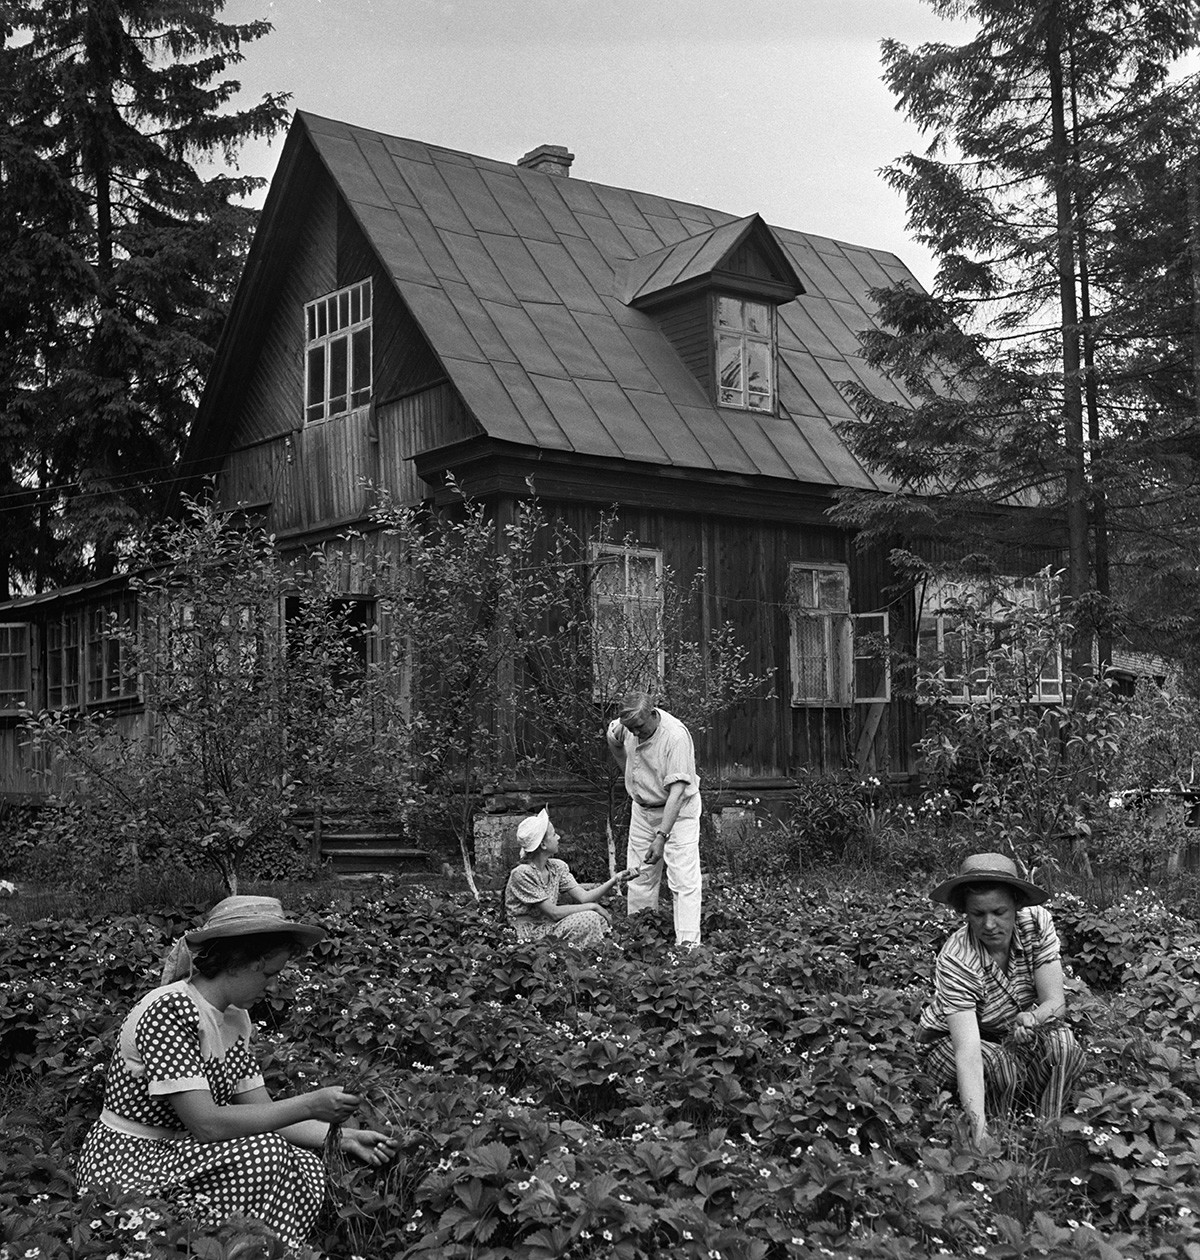 Dacha residents tending strawberry beds